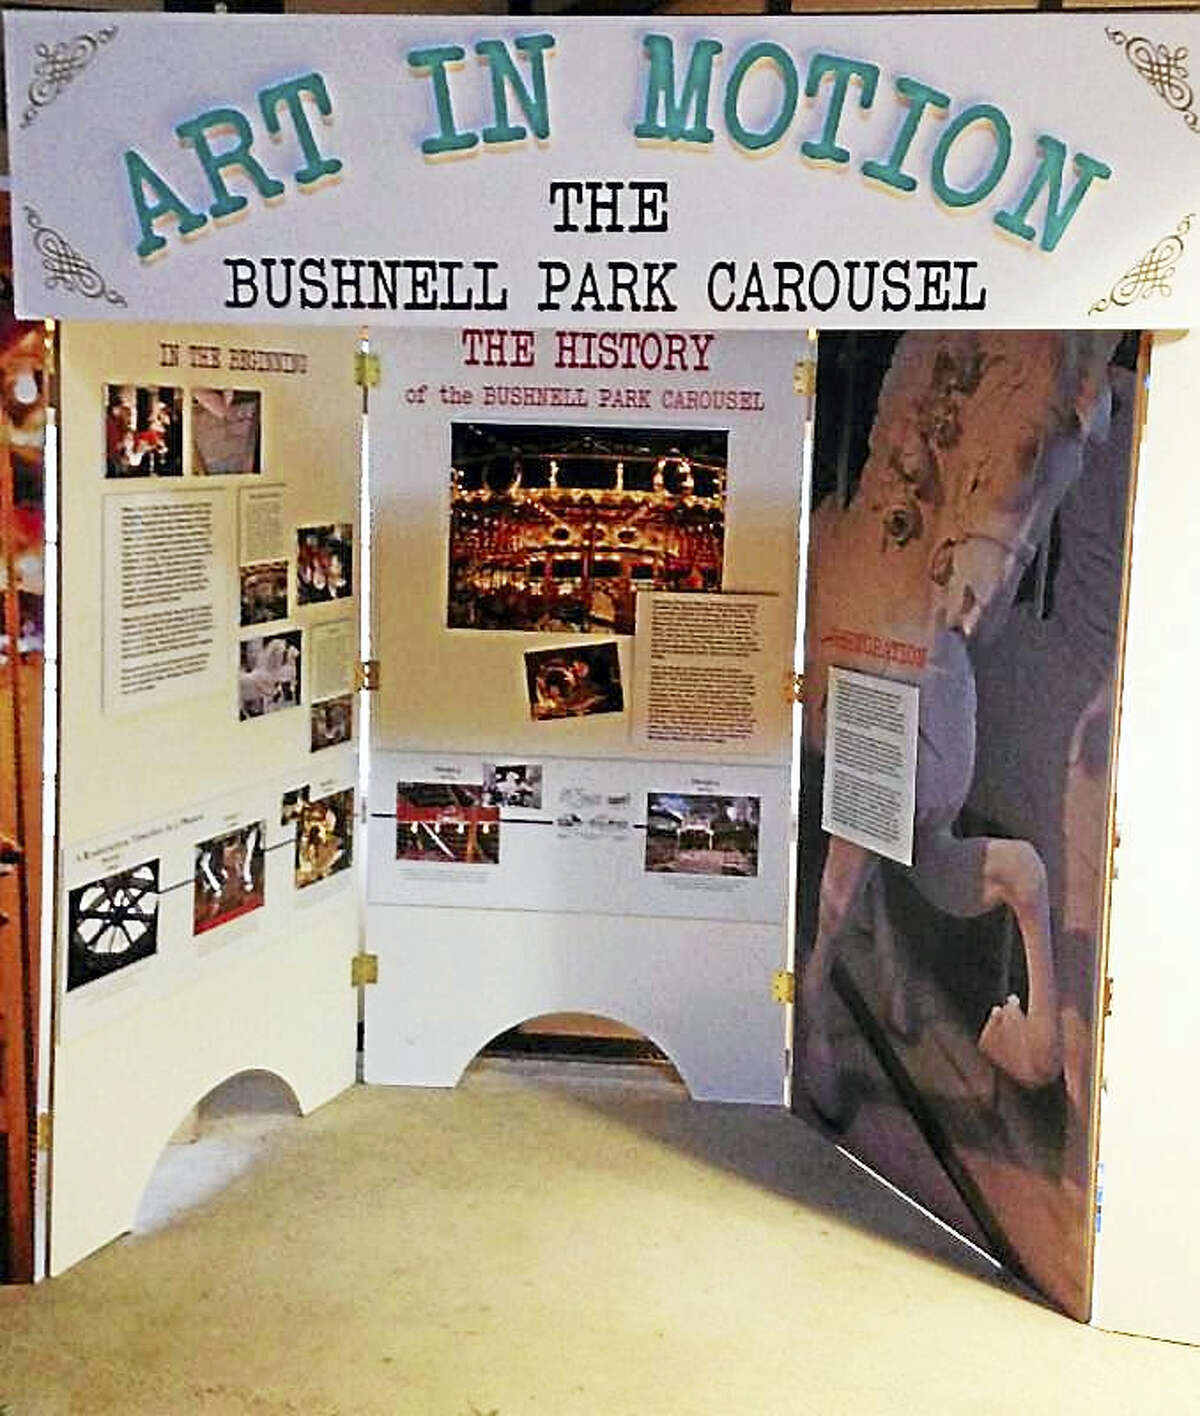 Contributed photo Art in Motion explores the restoration of the carousel at Bushnell Park in Hartford. The show is open through January.